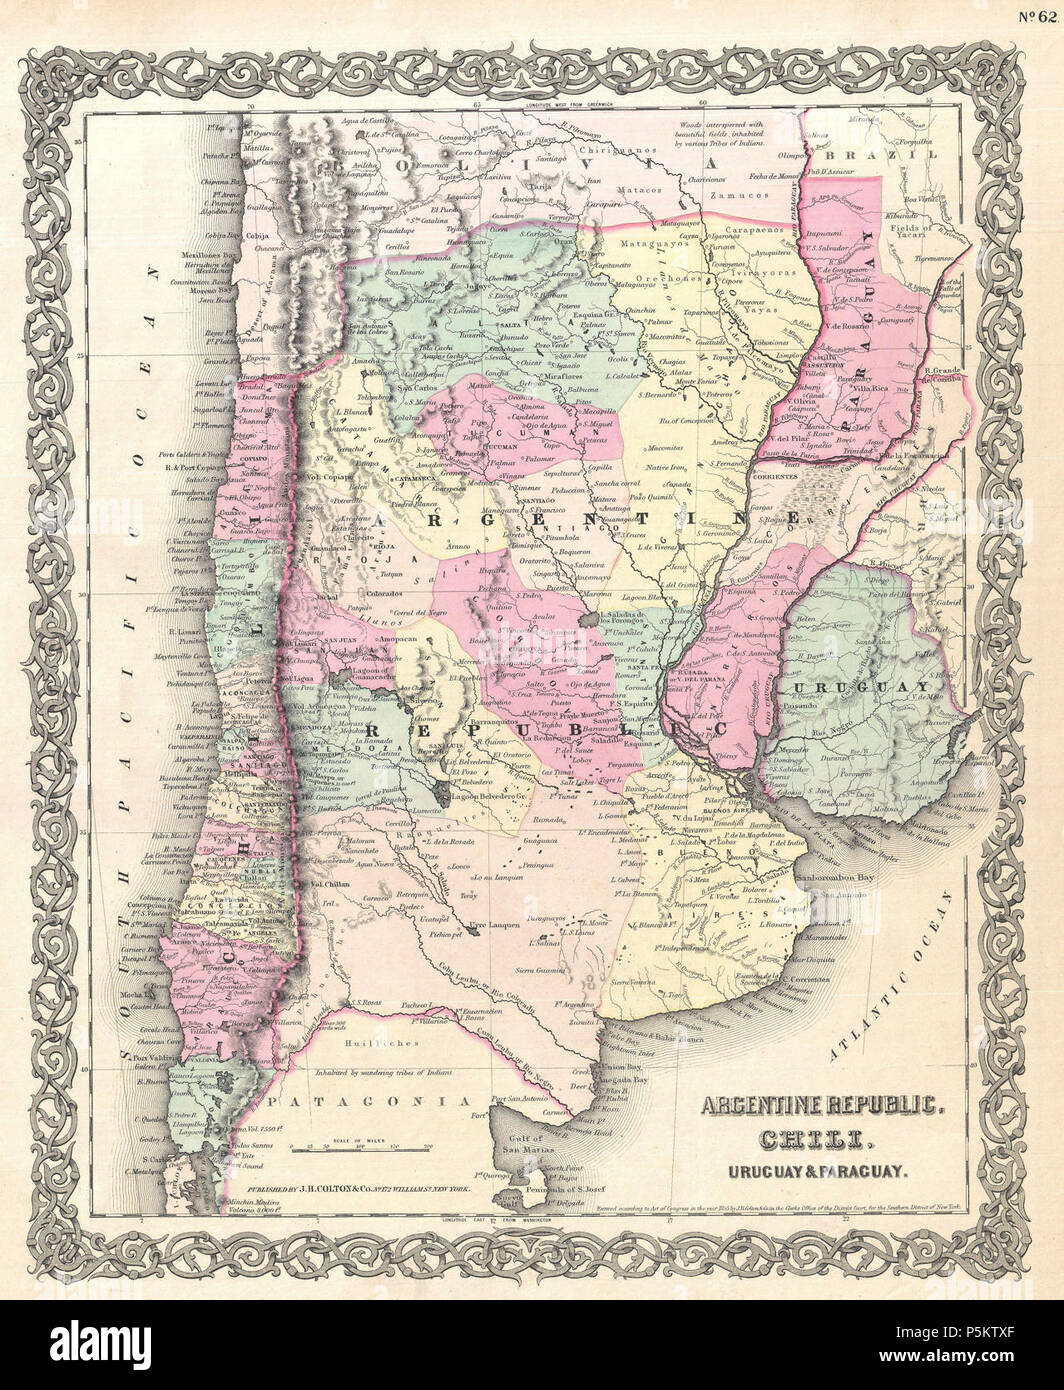 Aconcagua Karte Argentinien.1855 Colton Map Of Argentina Stockfotos 1855 Colton Map Of